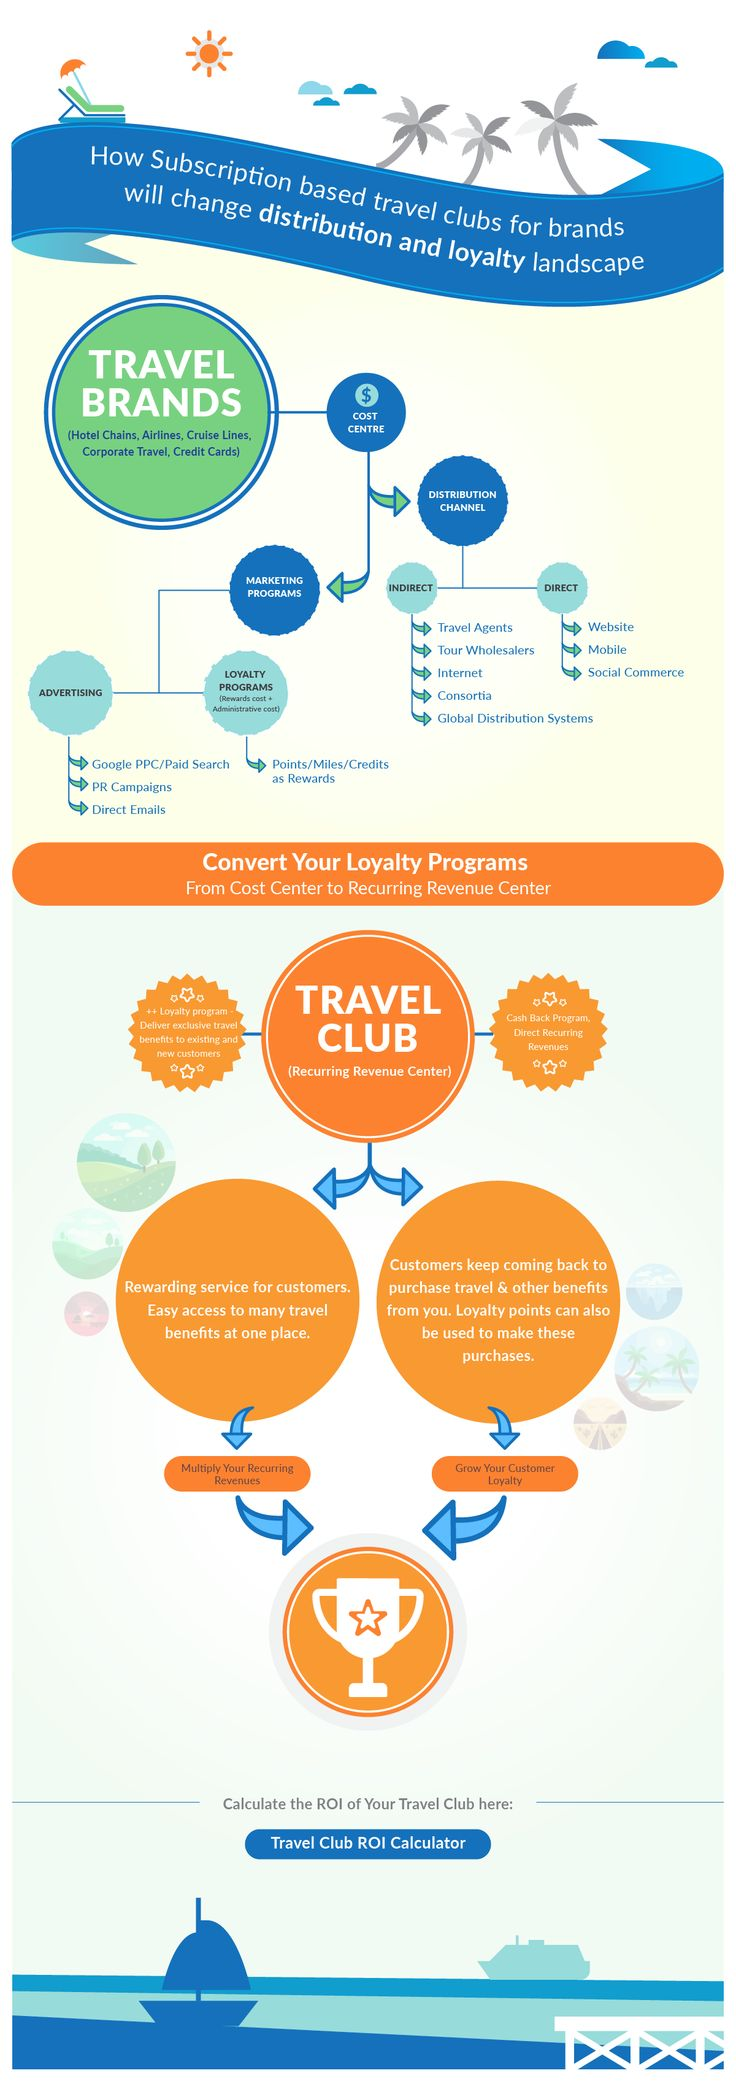 How Subscription based Travel Clubs for Brands will change the Distribution & Loyalty Landscape- Infographic